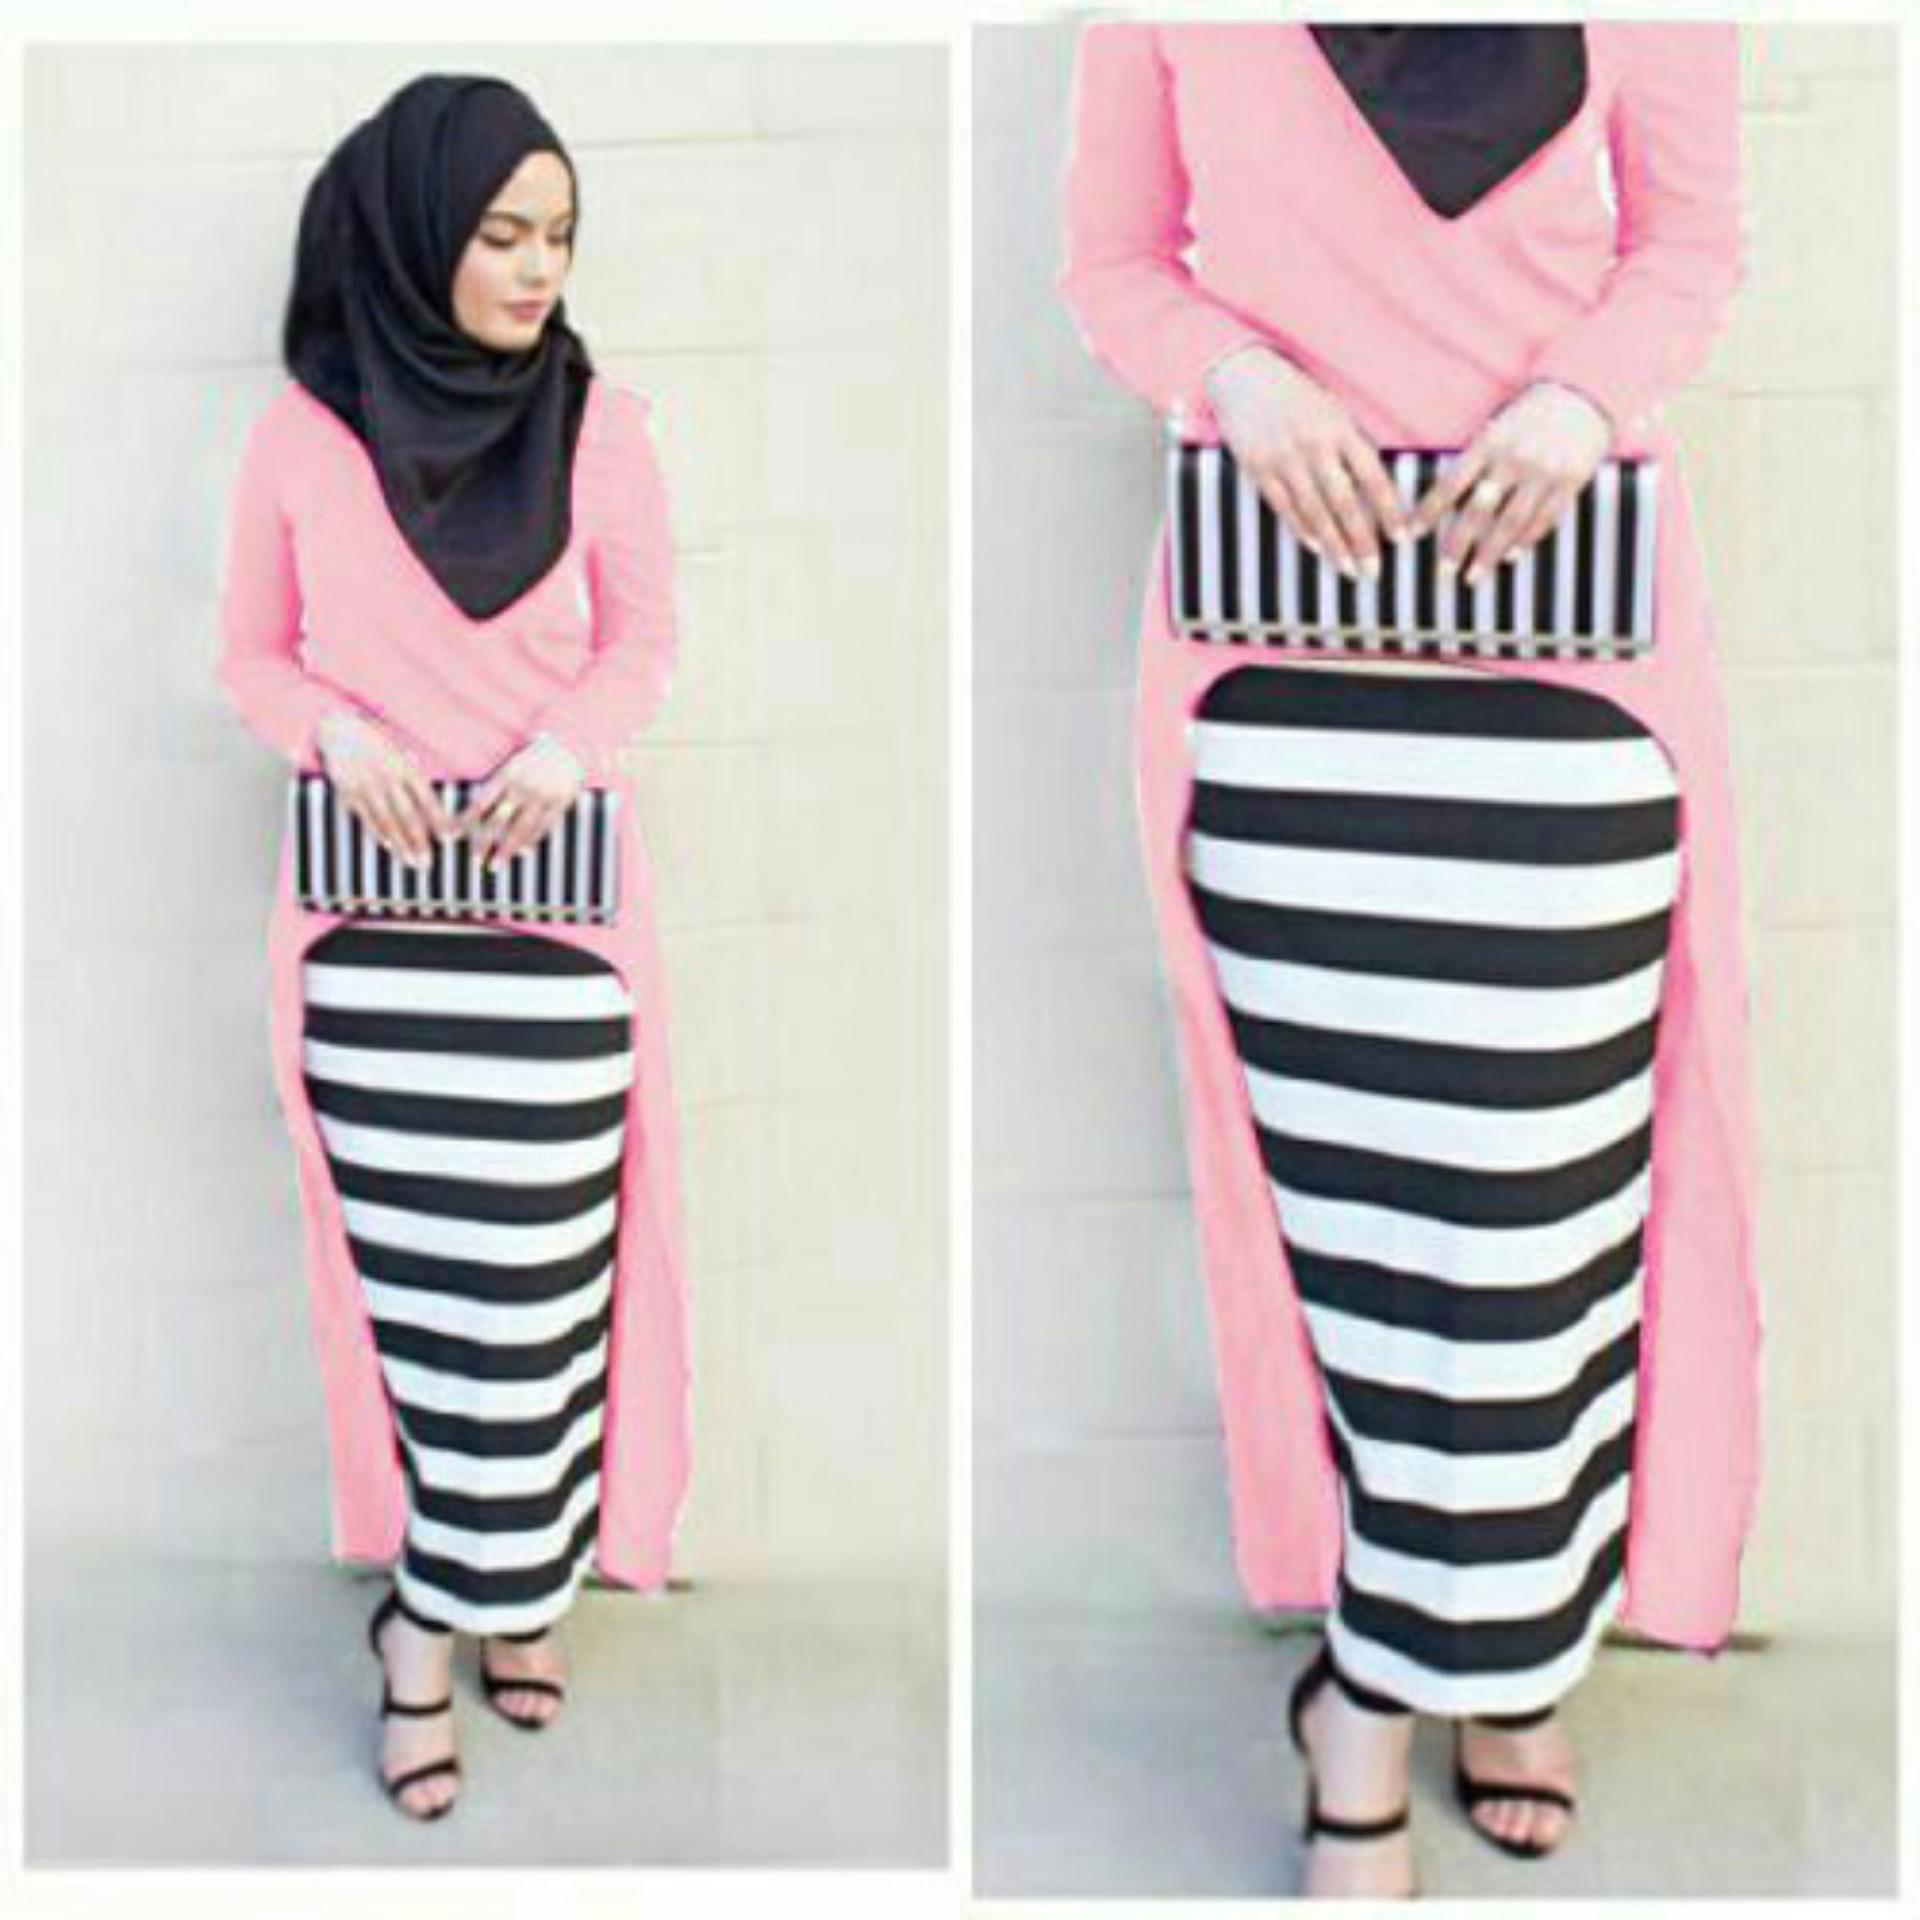 Beli Sr Collection Set Muslim Wanita 3 In 1 Ronia Gita Tunik Rok Pink Online